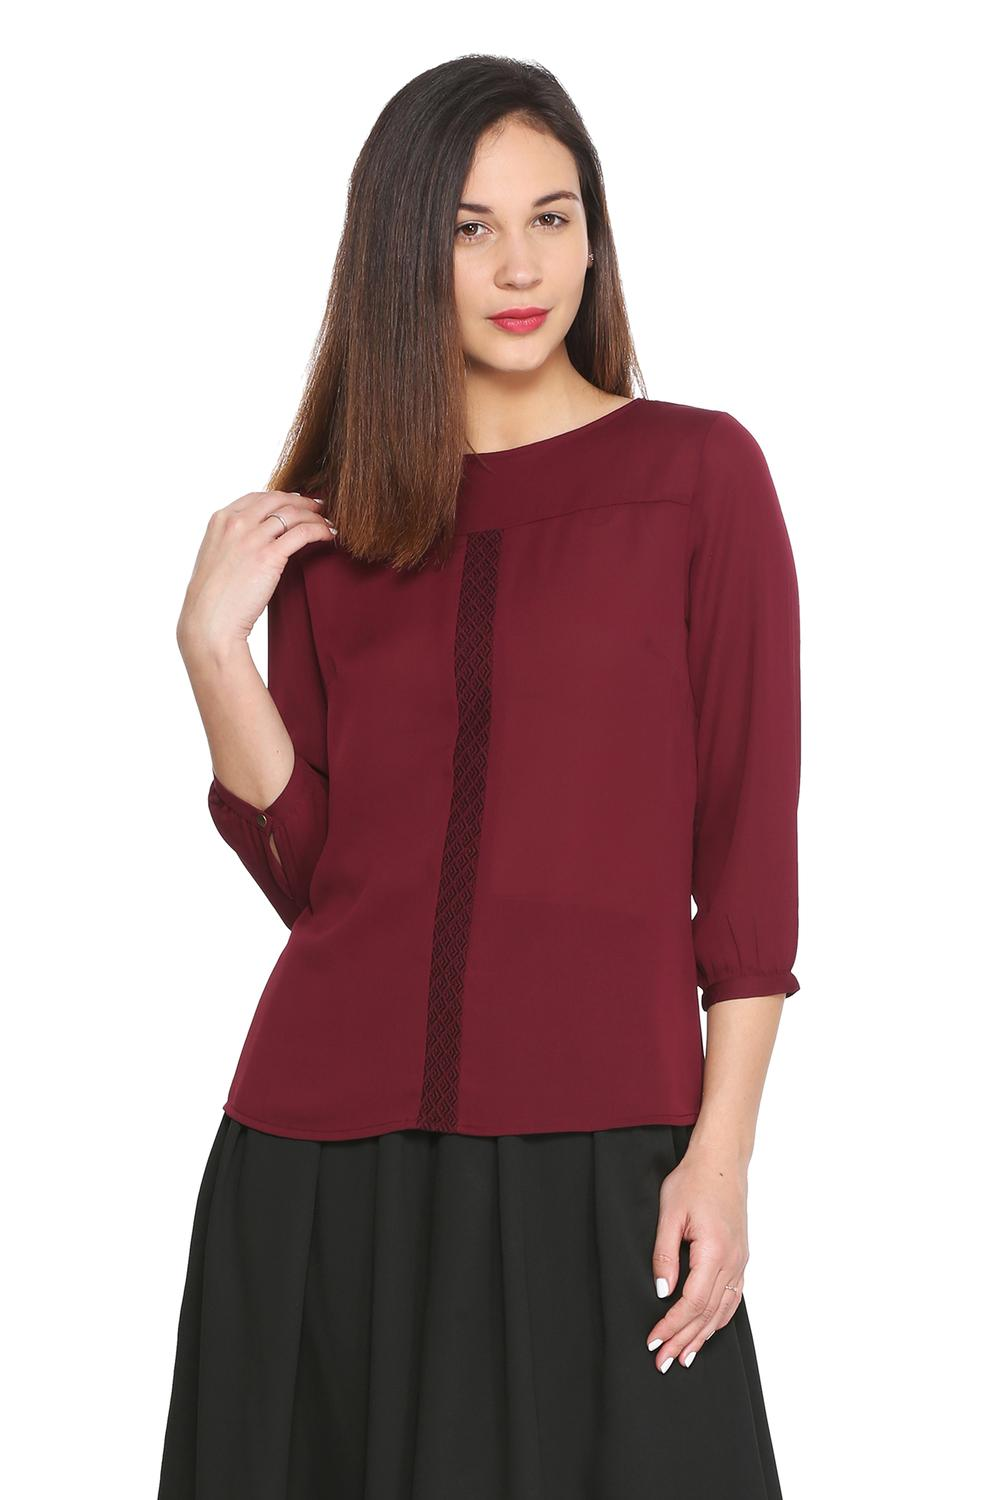 5134b8aabbb4e1 Solly Tees & Tops, Allen Solly Maroon Top for Women at Allensolly.com